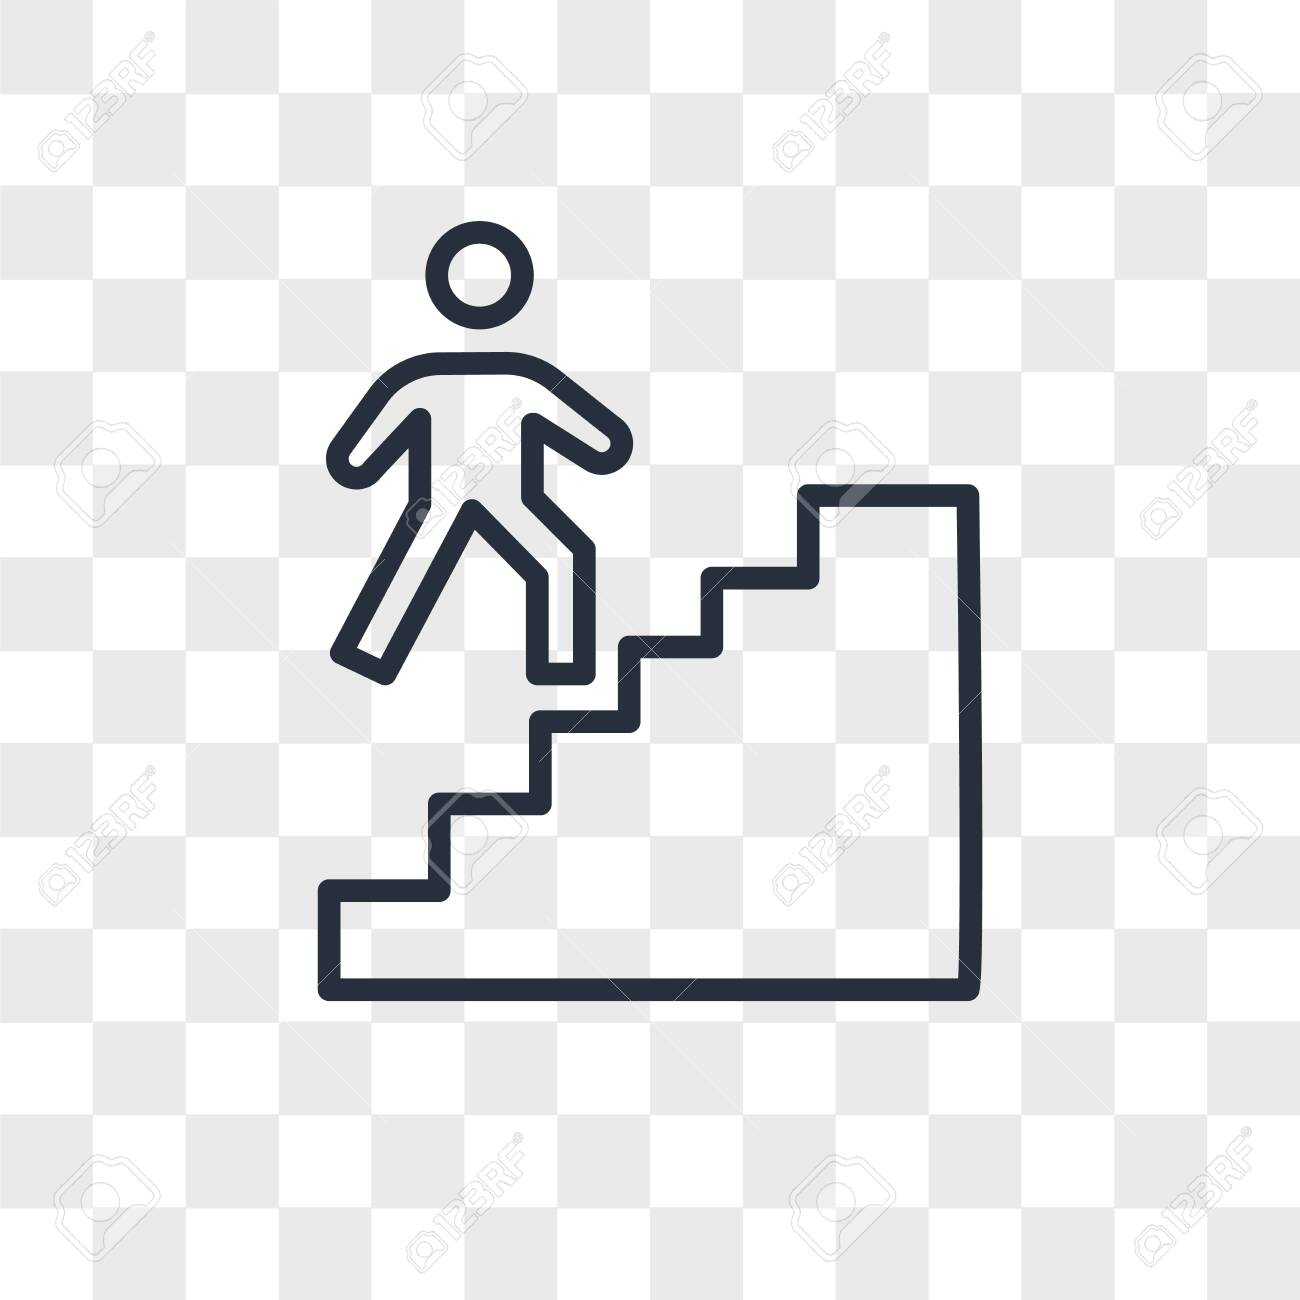 stairwell vector icon isolated on transparent background, stairwell logo concept - 150639282